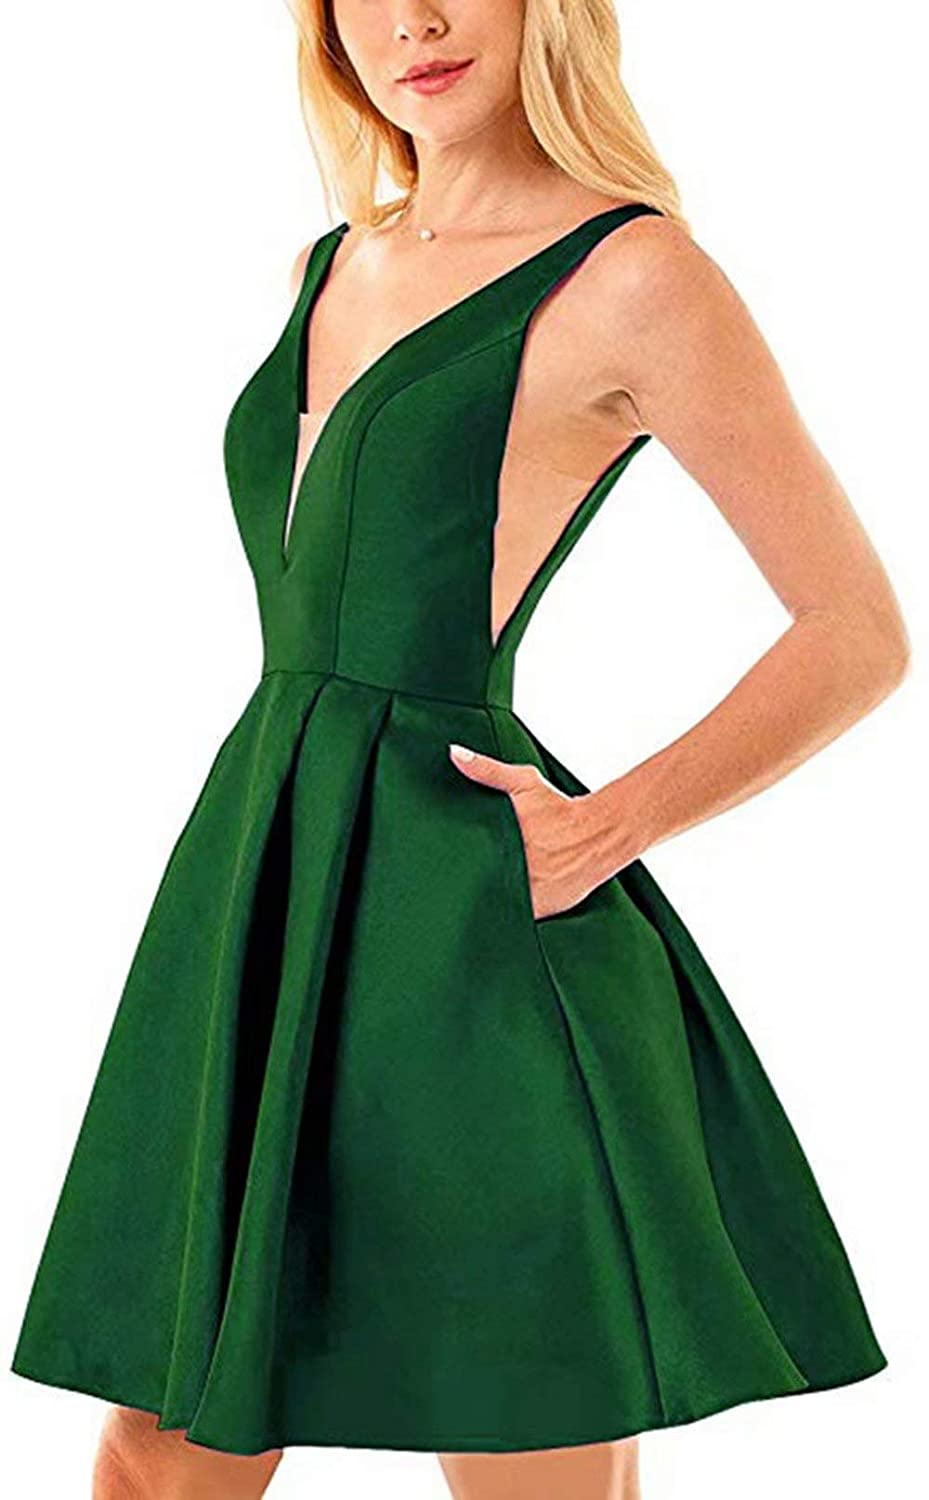 Emerald Green Rmaytiked Womens V Neck Prom Dresses Short 2019 Satin A Line Homecoming Dresses with Pockets